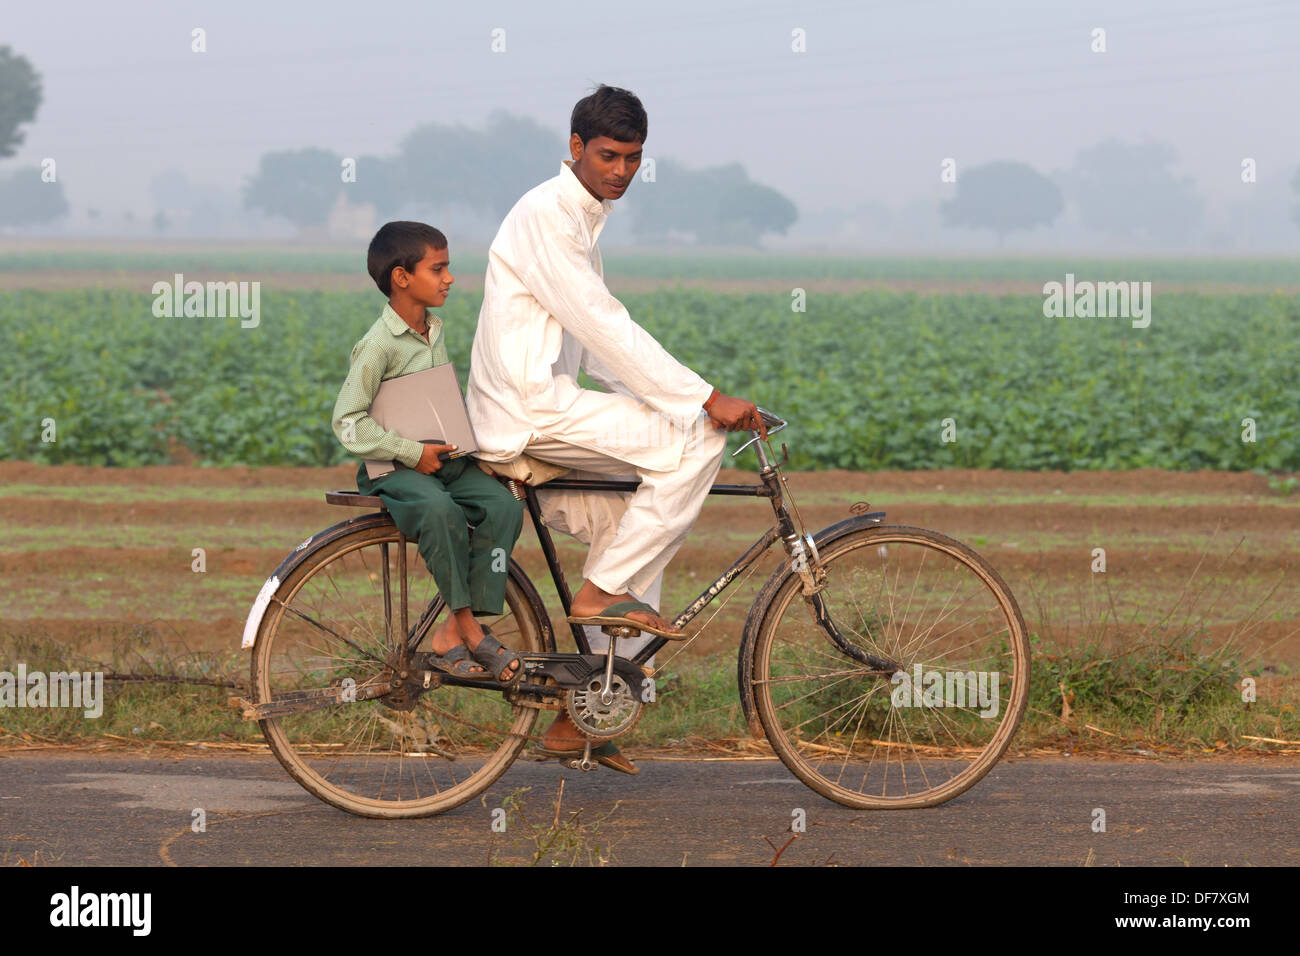 1e2b12b398f india, Uttar Pradesh, young male riding bike with younger boy in school  uniform on